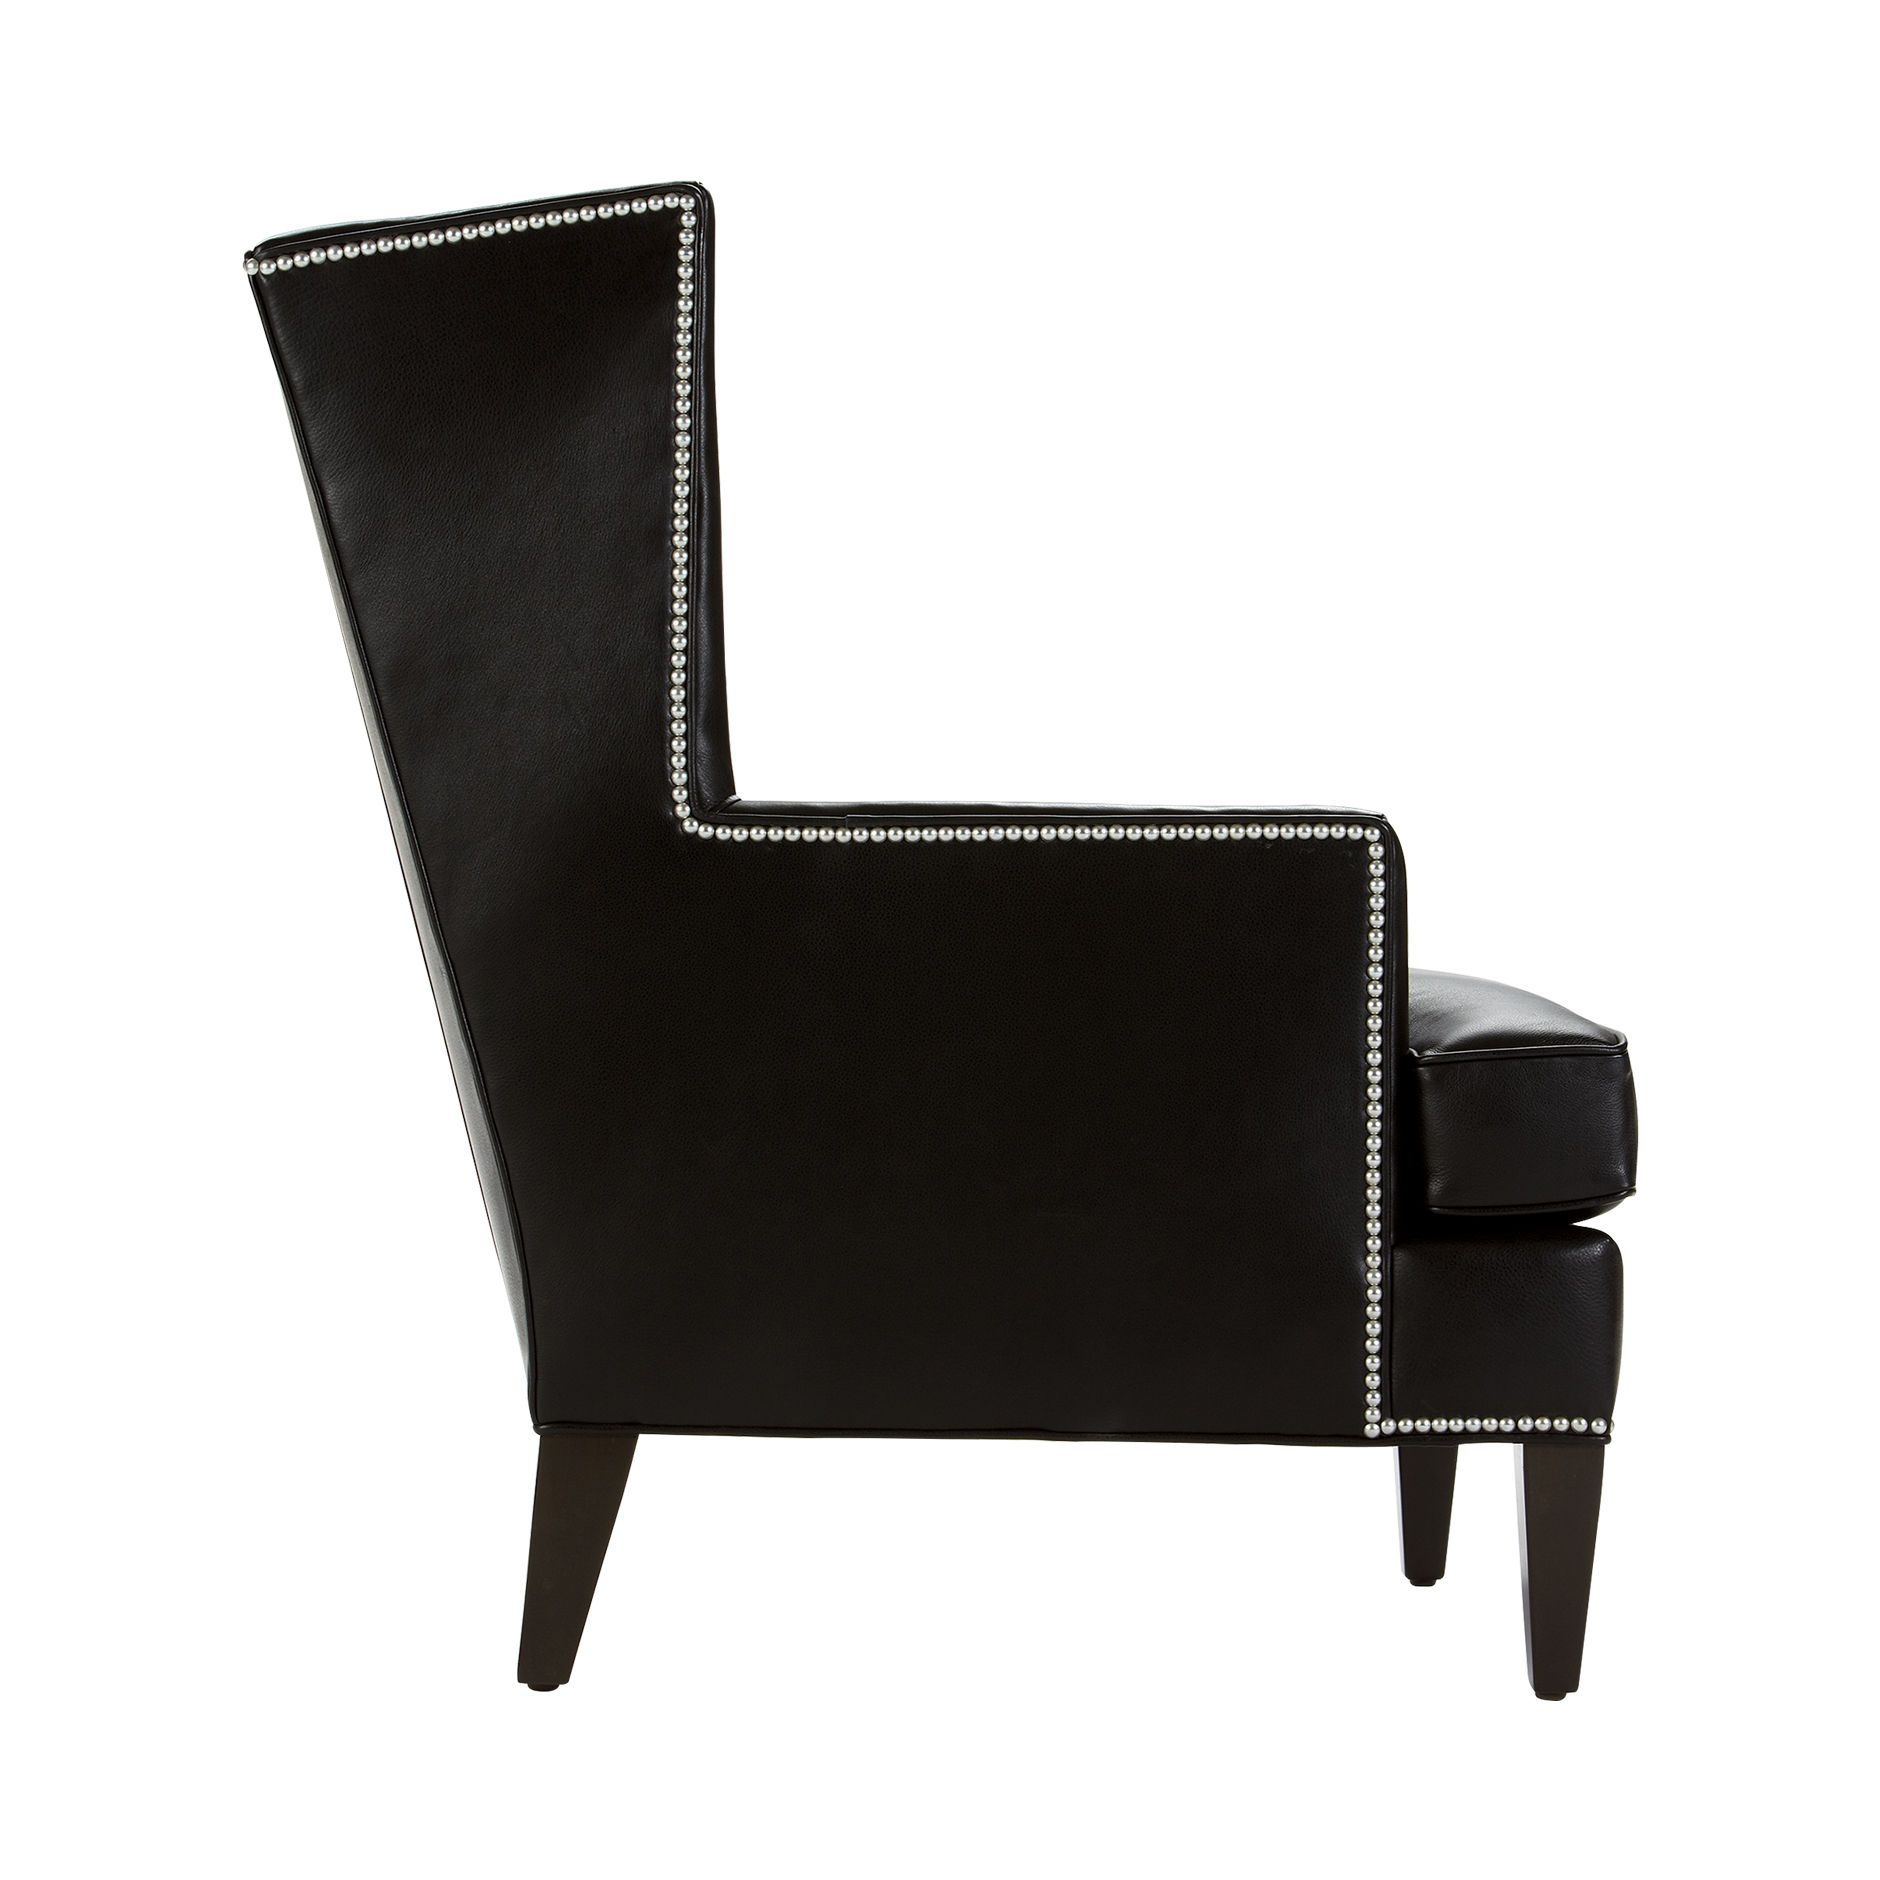 Parker Leather Chair, Turin/ Black - Ethan Allen US | interior ...